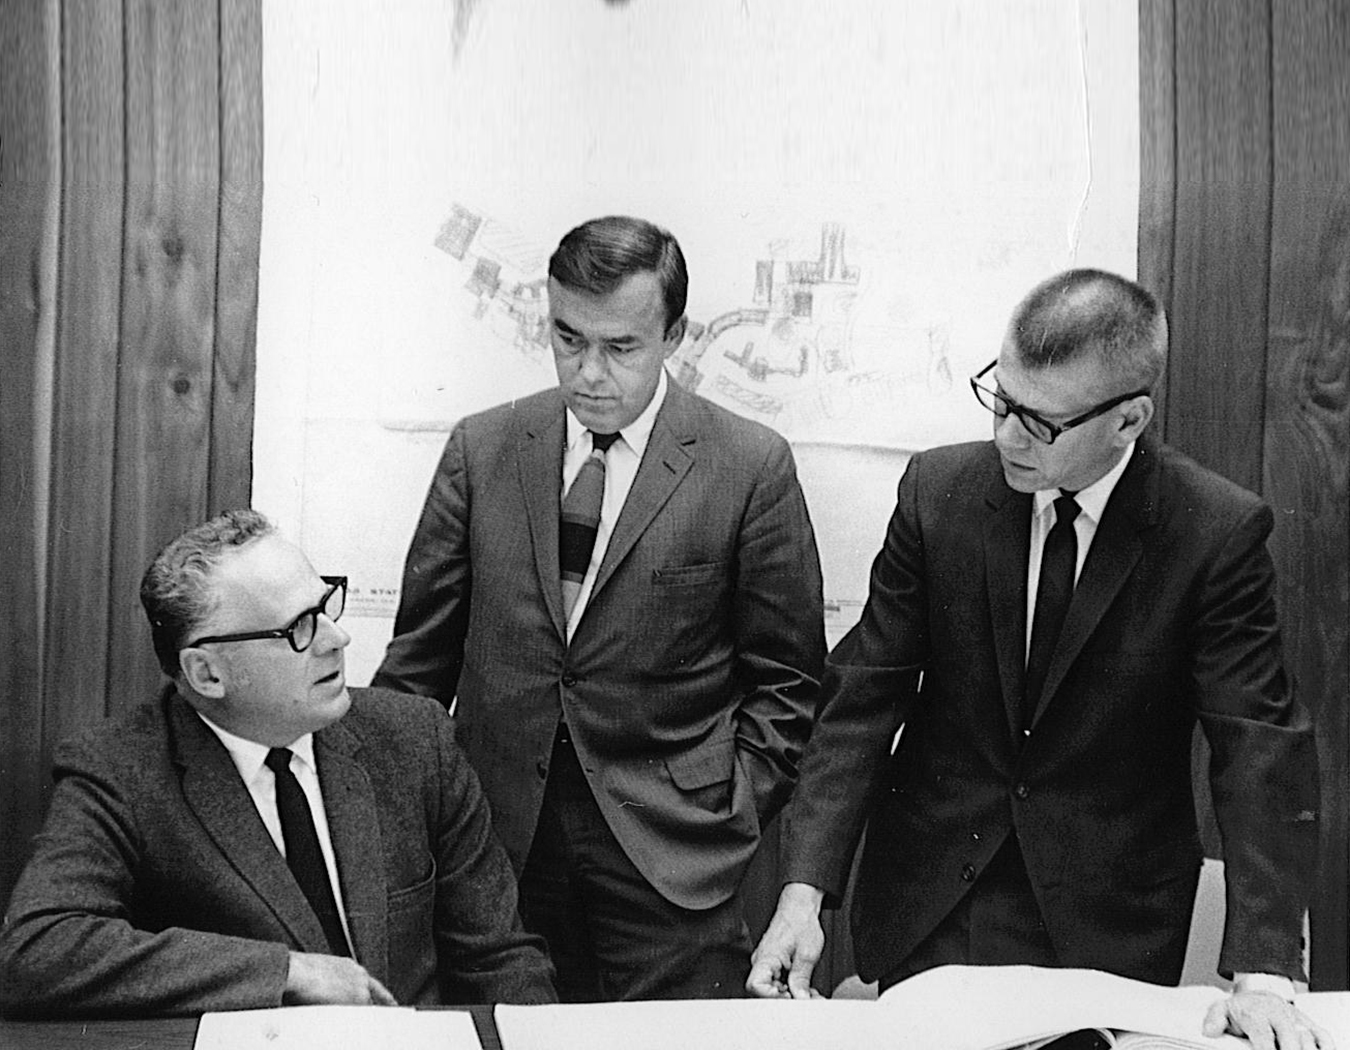 Carlson (far right) with colleagues